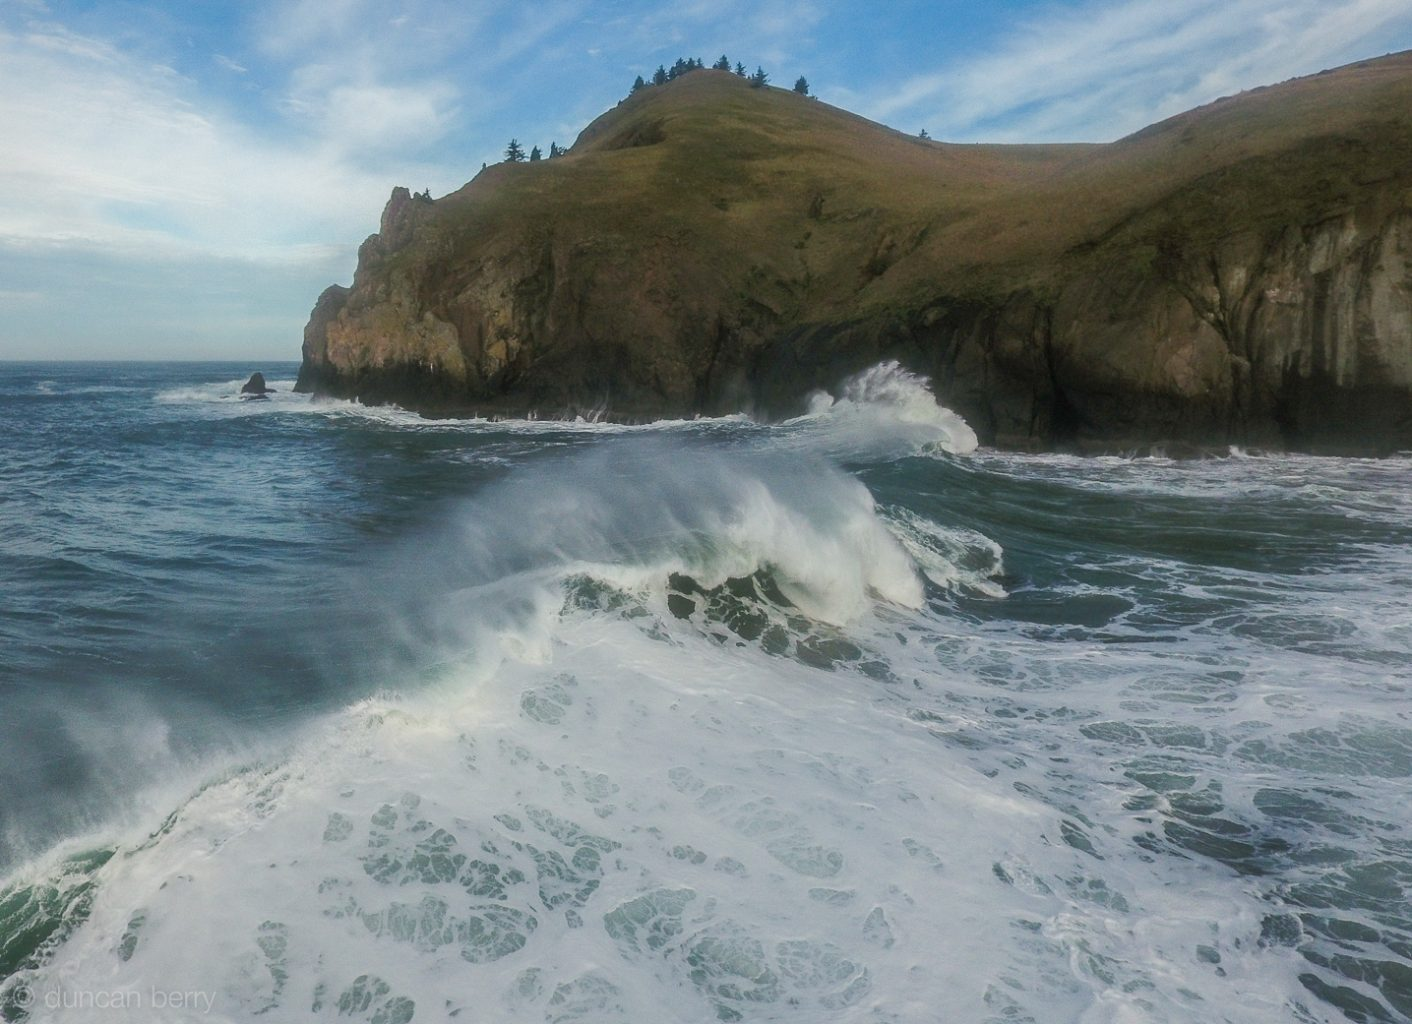 Big waves rolling into Salmon River mouth below Cascade Head